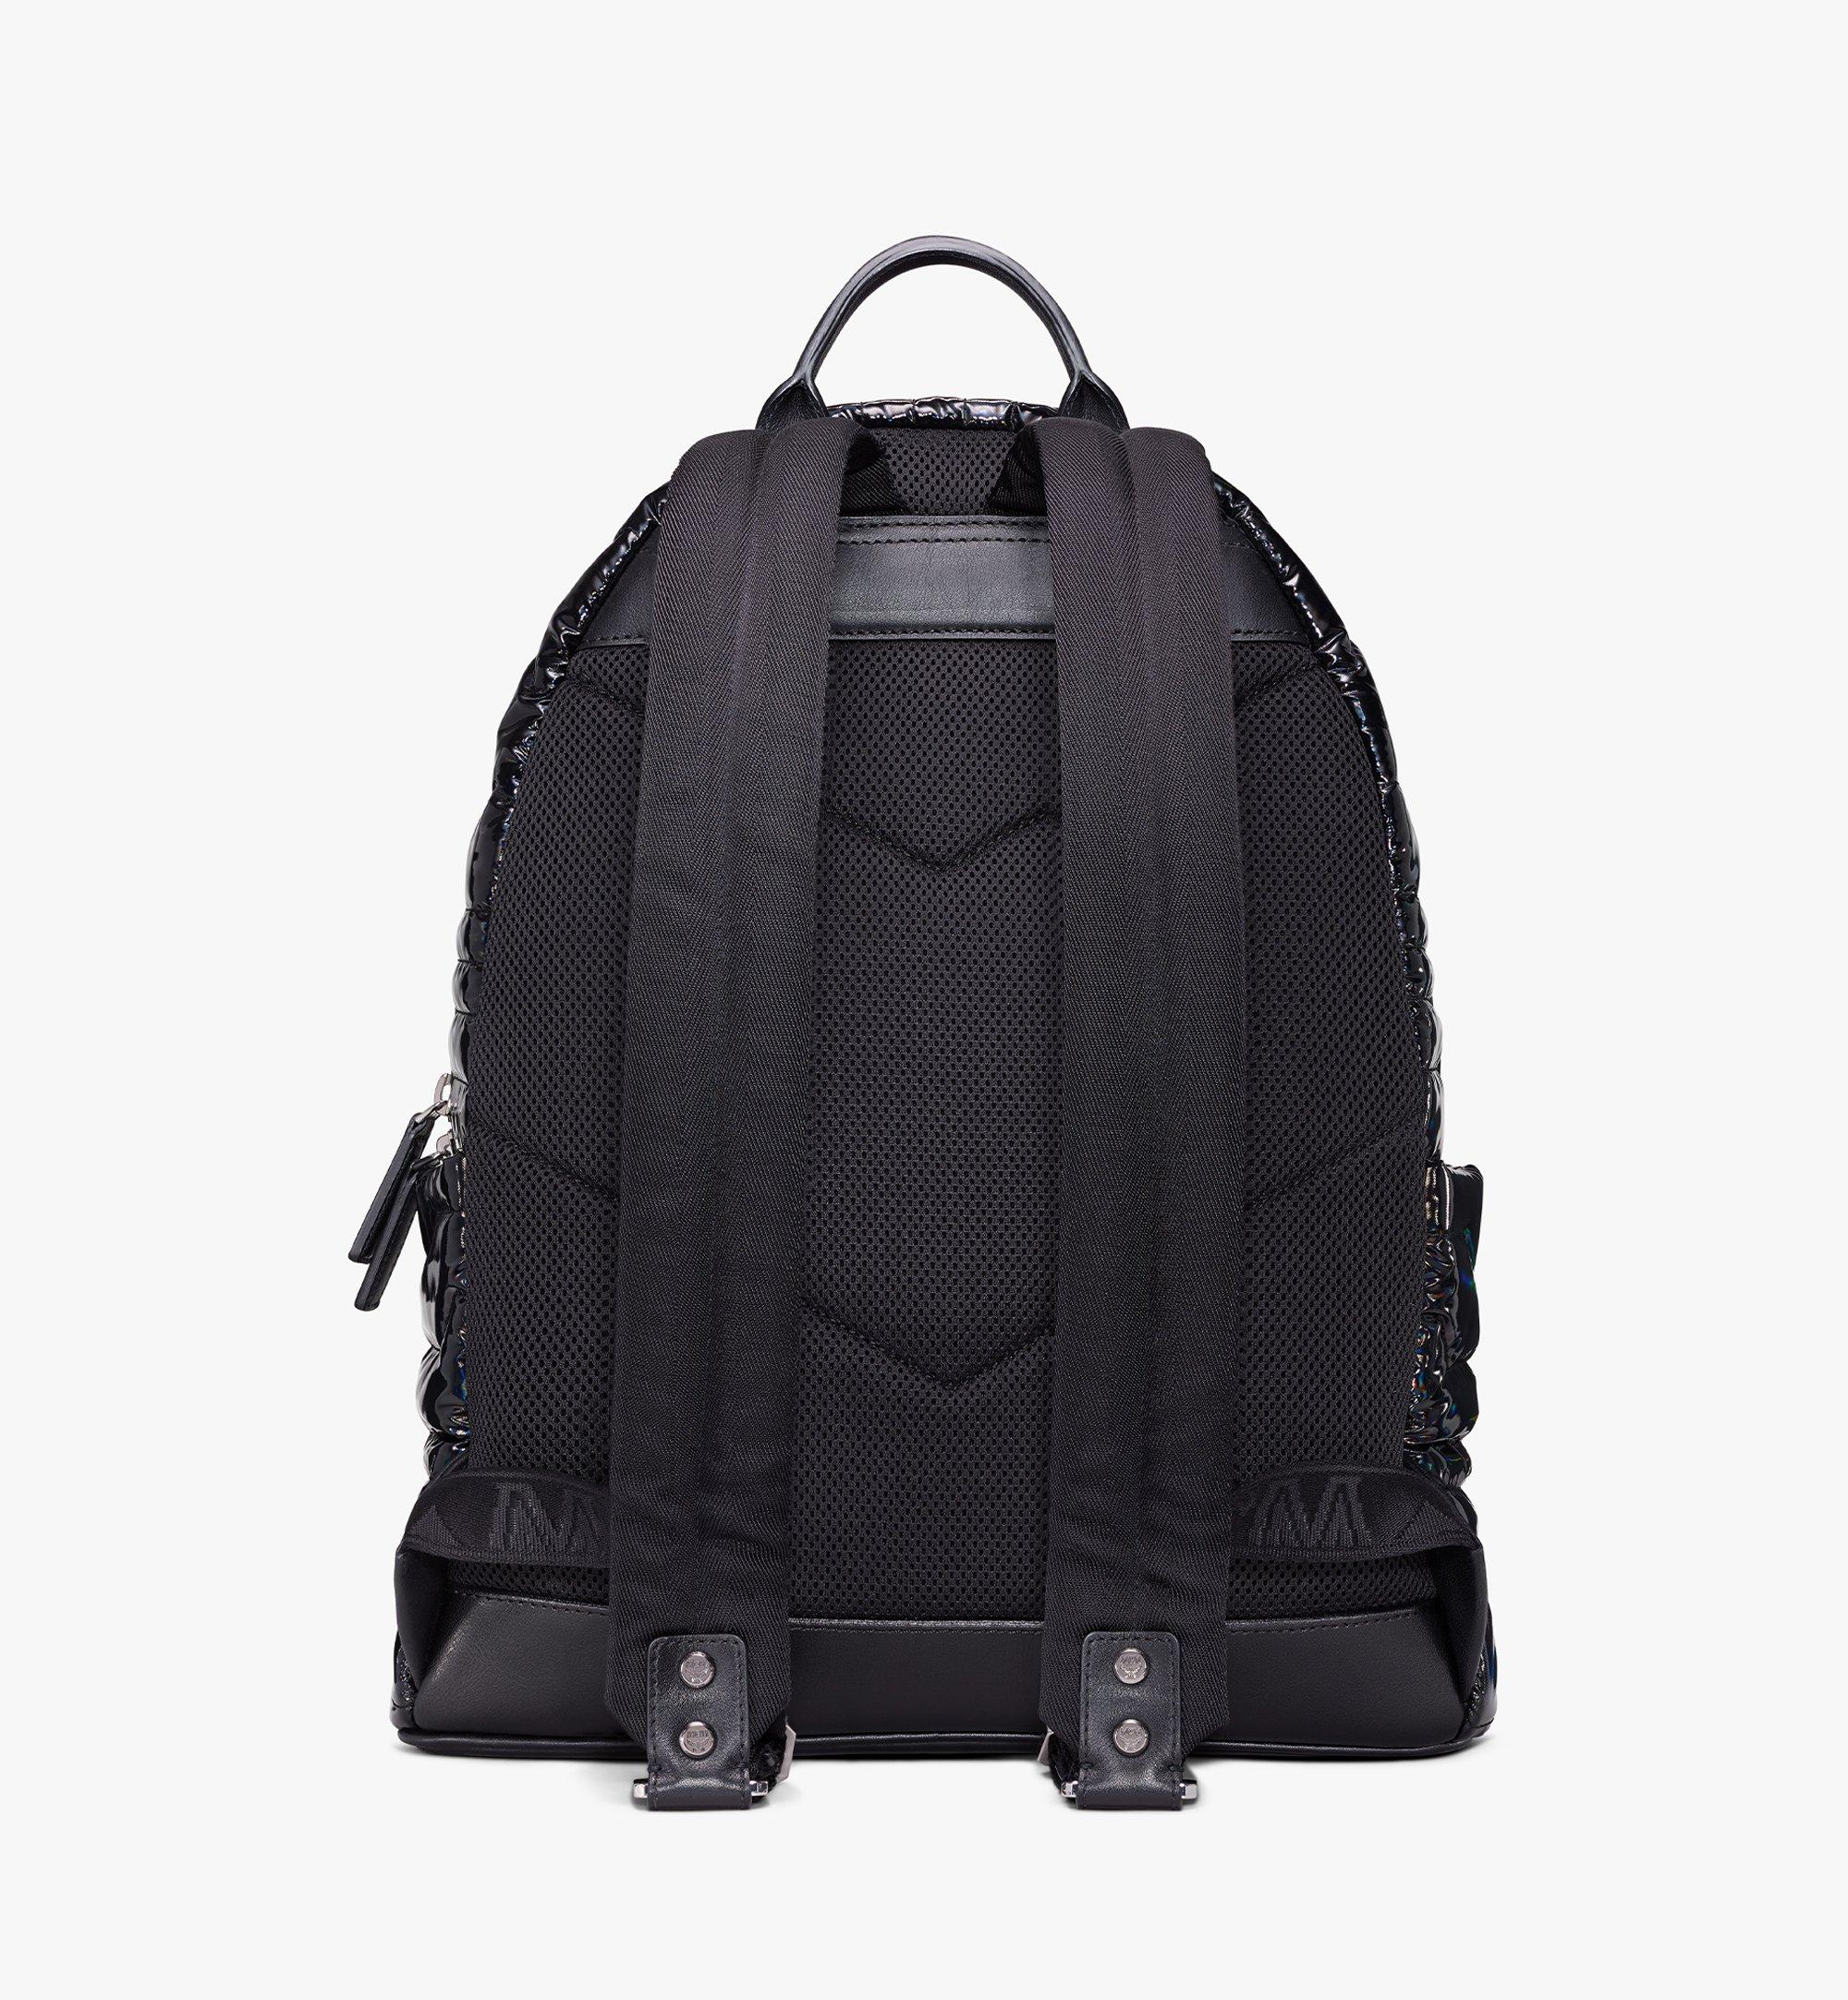 MCM Stark Backpack in Tec-Quilt Fabric Black MMKAAVE19BK001 Alternate View 4